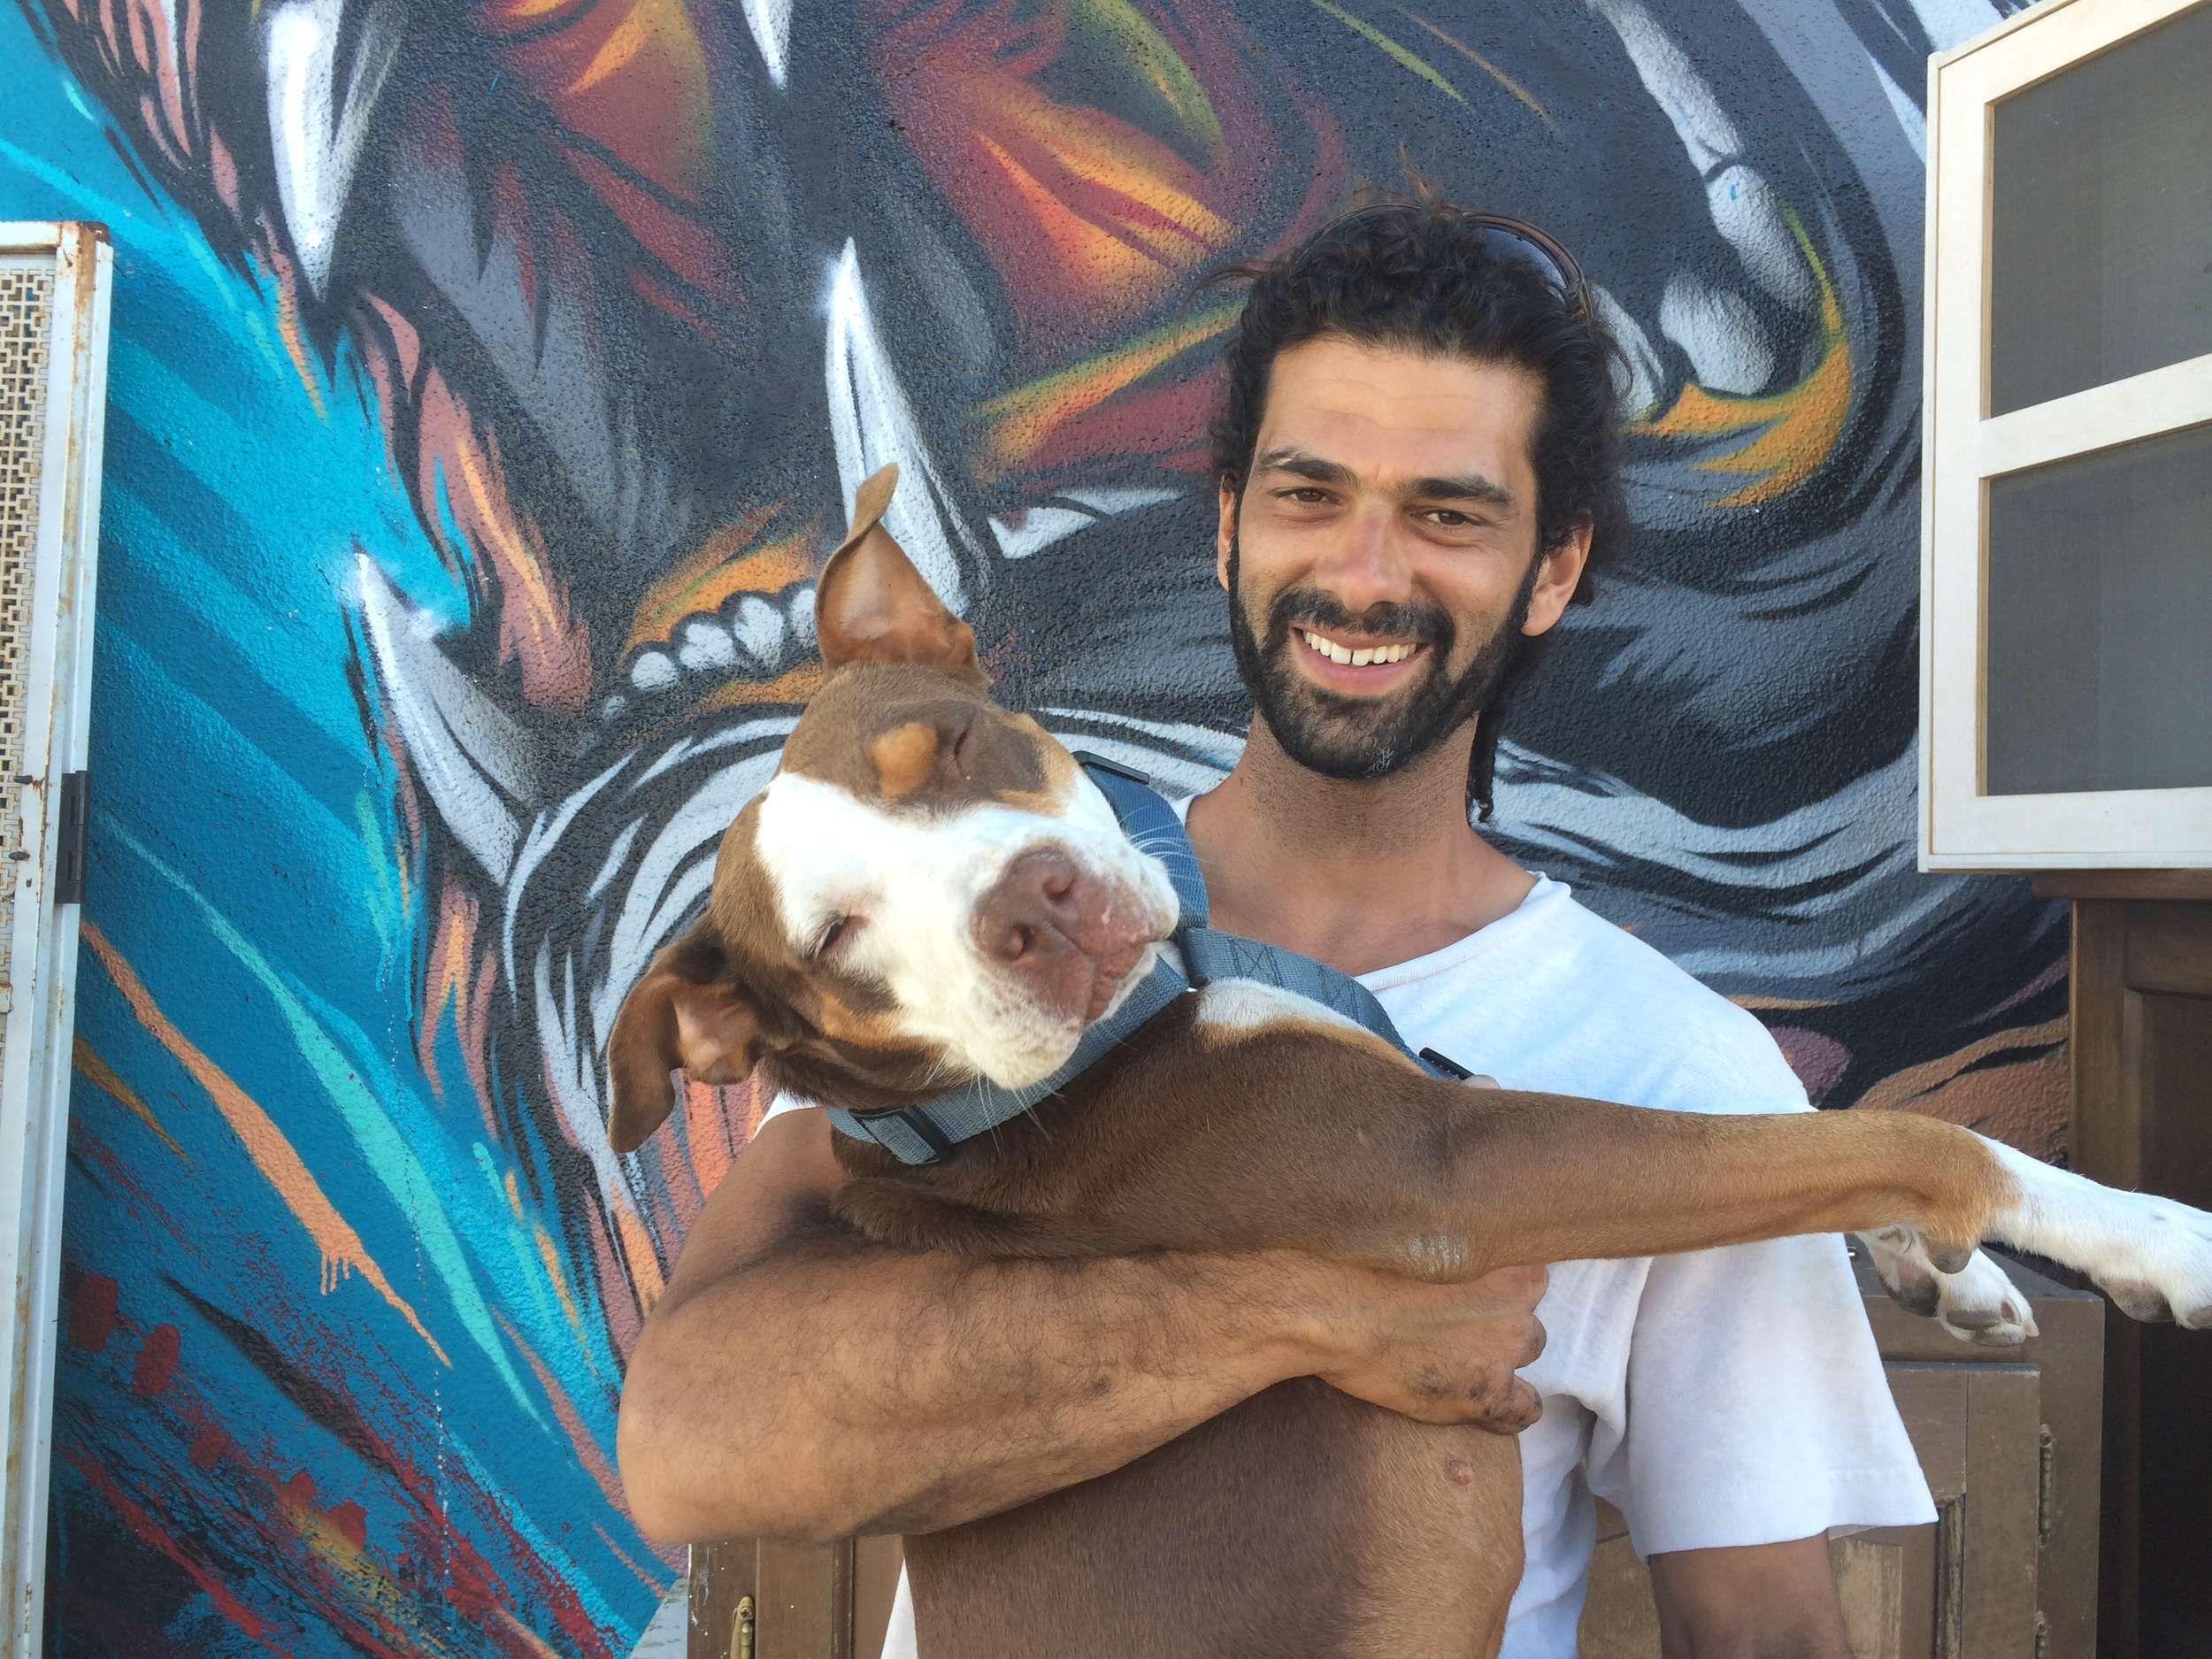 Love Shack owner Udi Levy (pictured in front of the Lion mural because he's a Leo) with bff Ella. In 2010, he turned A Bed For You mattress store into a beanbag shop and creative space.